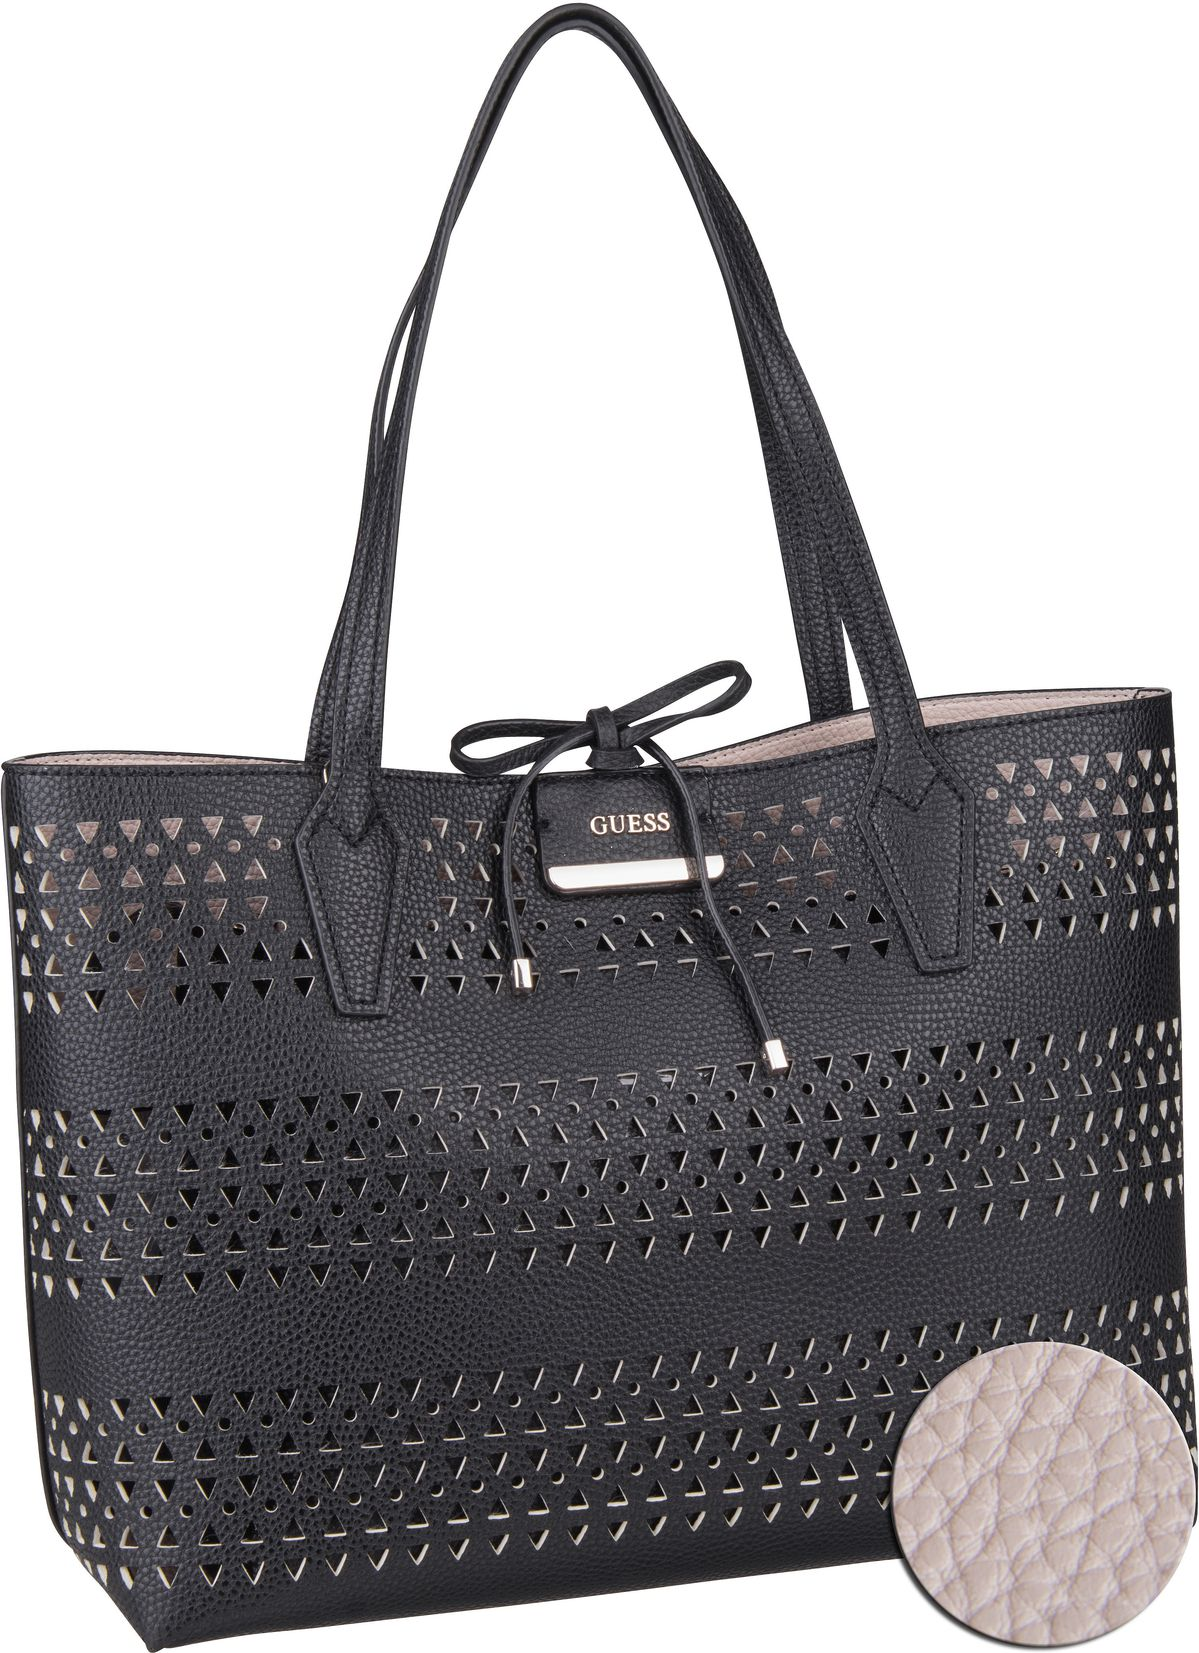 Handtasche Bobbi Inside Out Tote Black/Stone (innen: Beige)